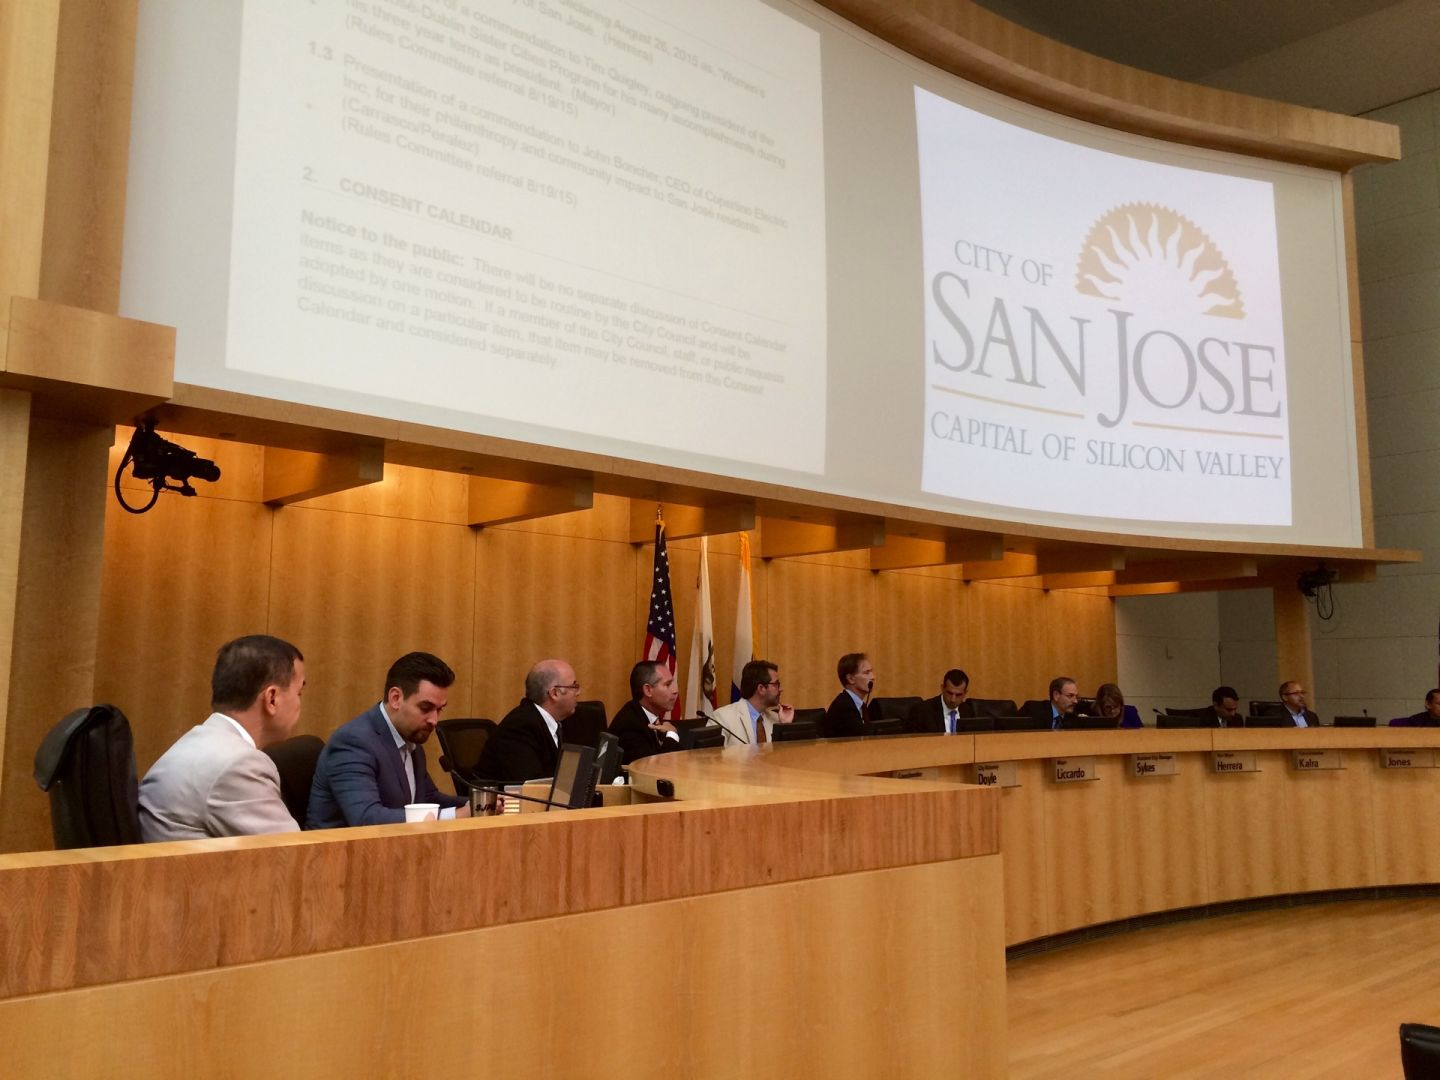 The San Jose City Council, poised to vote on pension reform years after the experiment began.